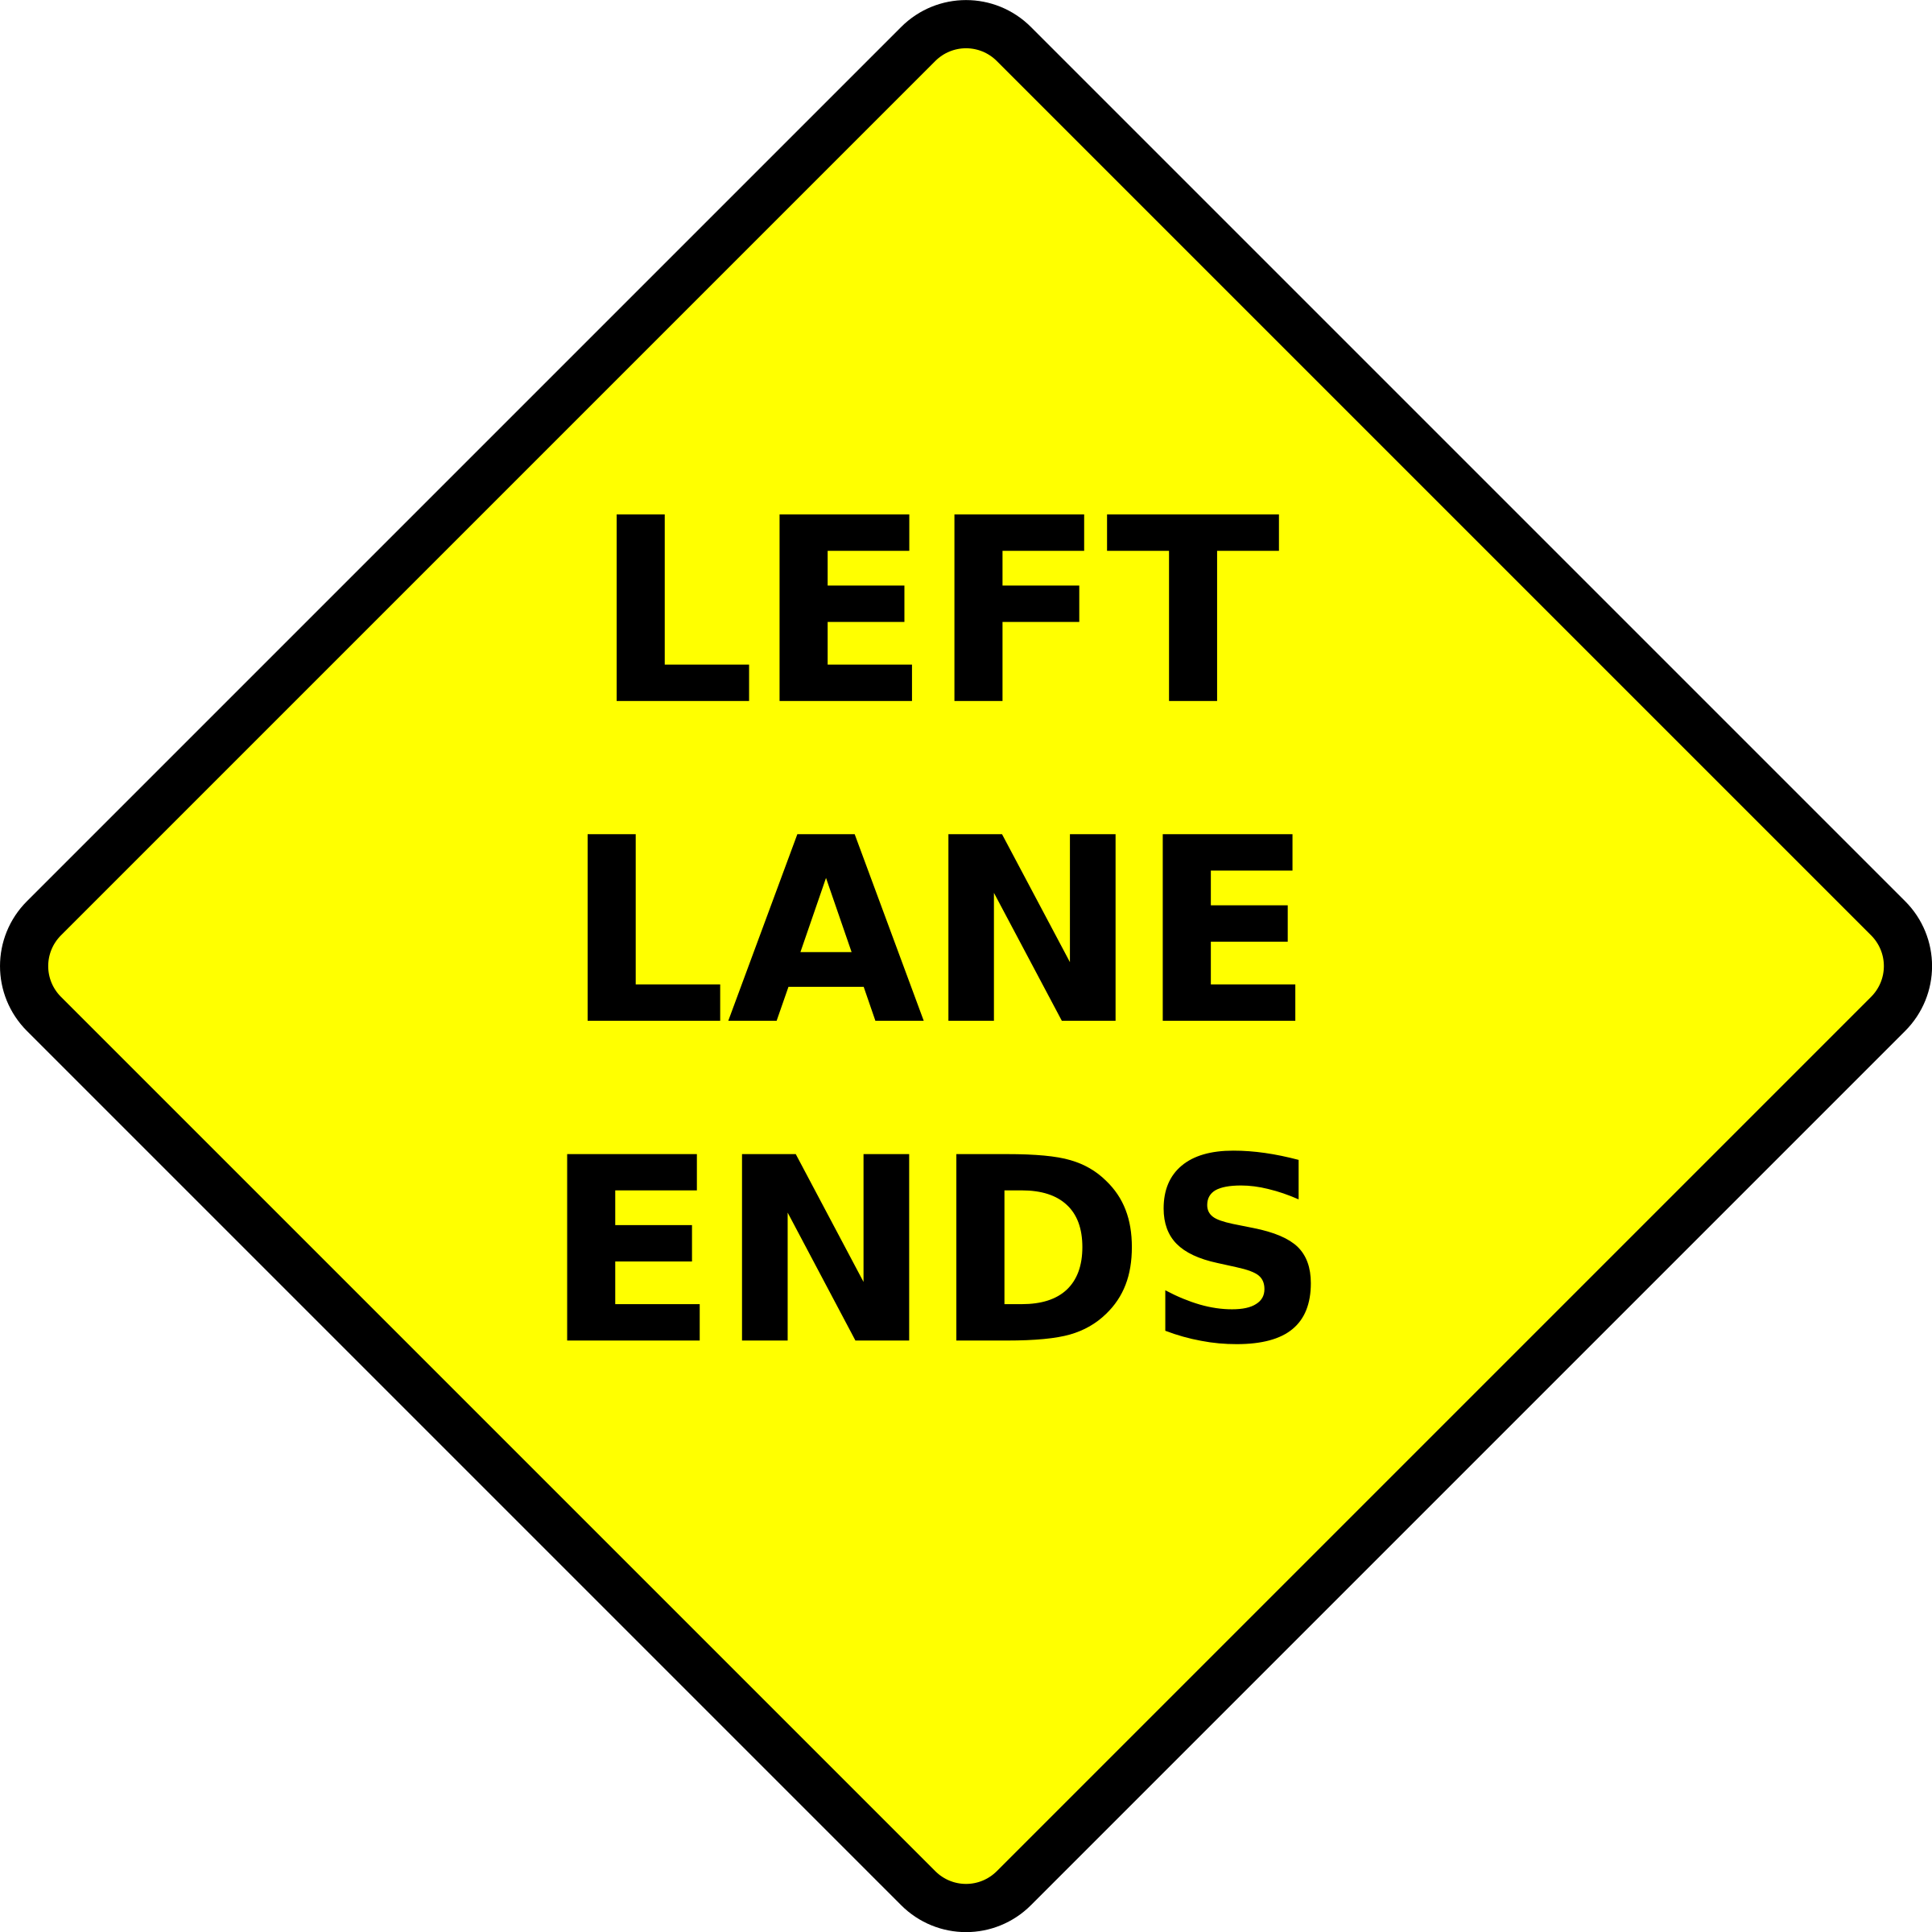 caution-lane ends-left by algotruneman